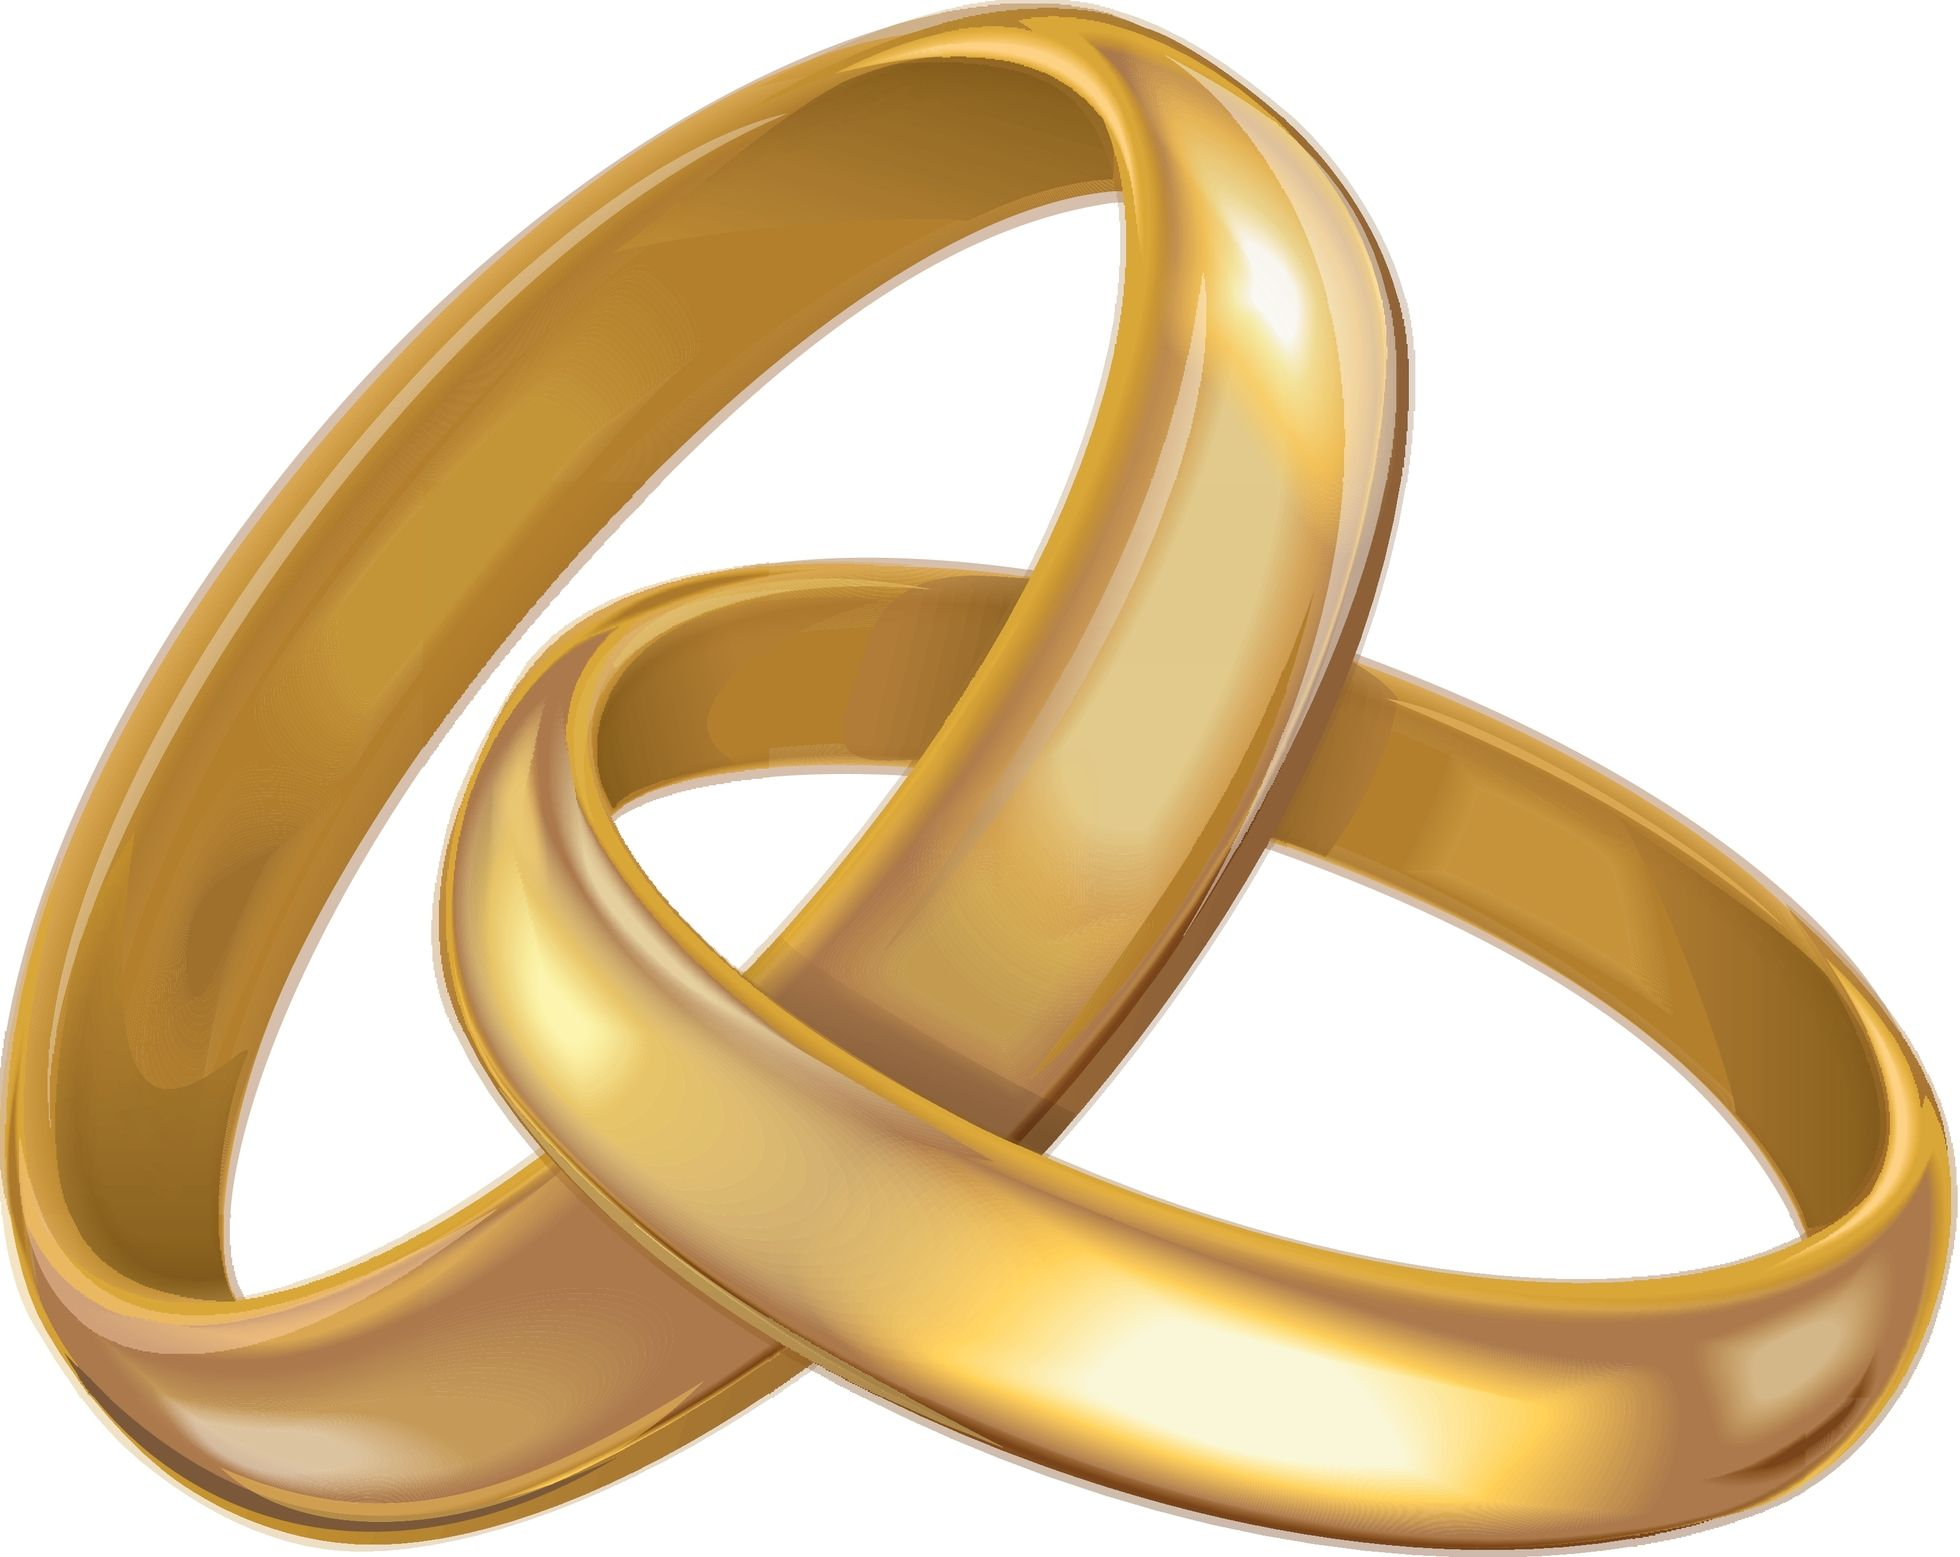 wedding rings clipart with wedding ring clip art wedding wedding rings clipart [ 1960 x 1557 Pixel ]